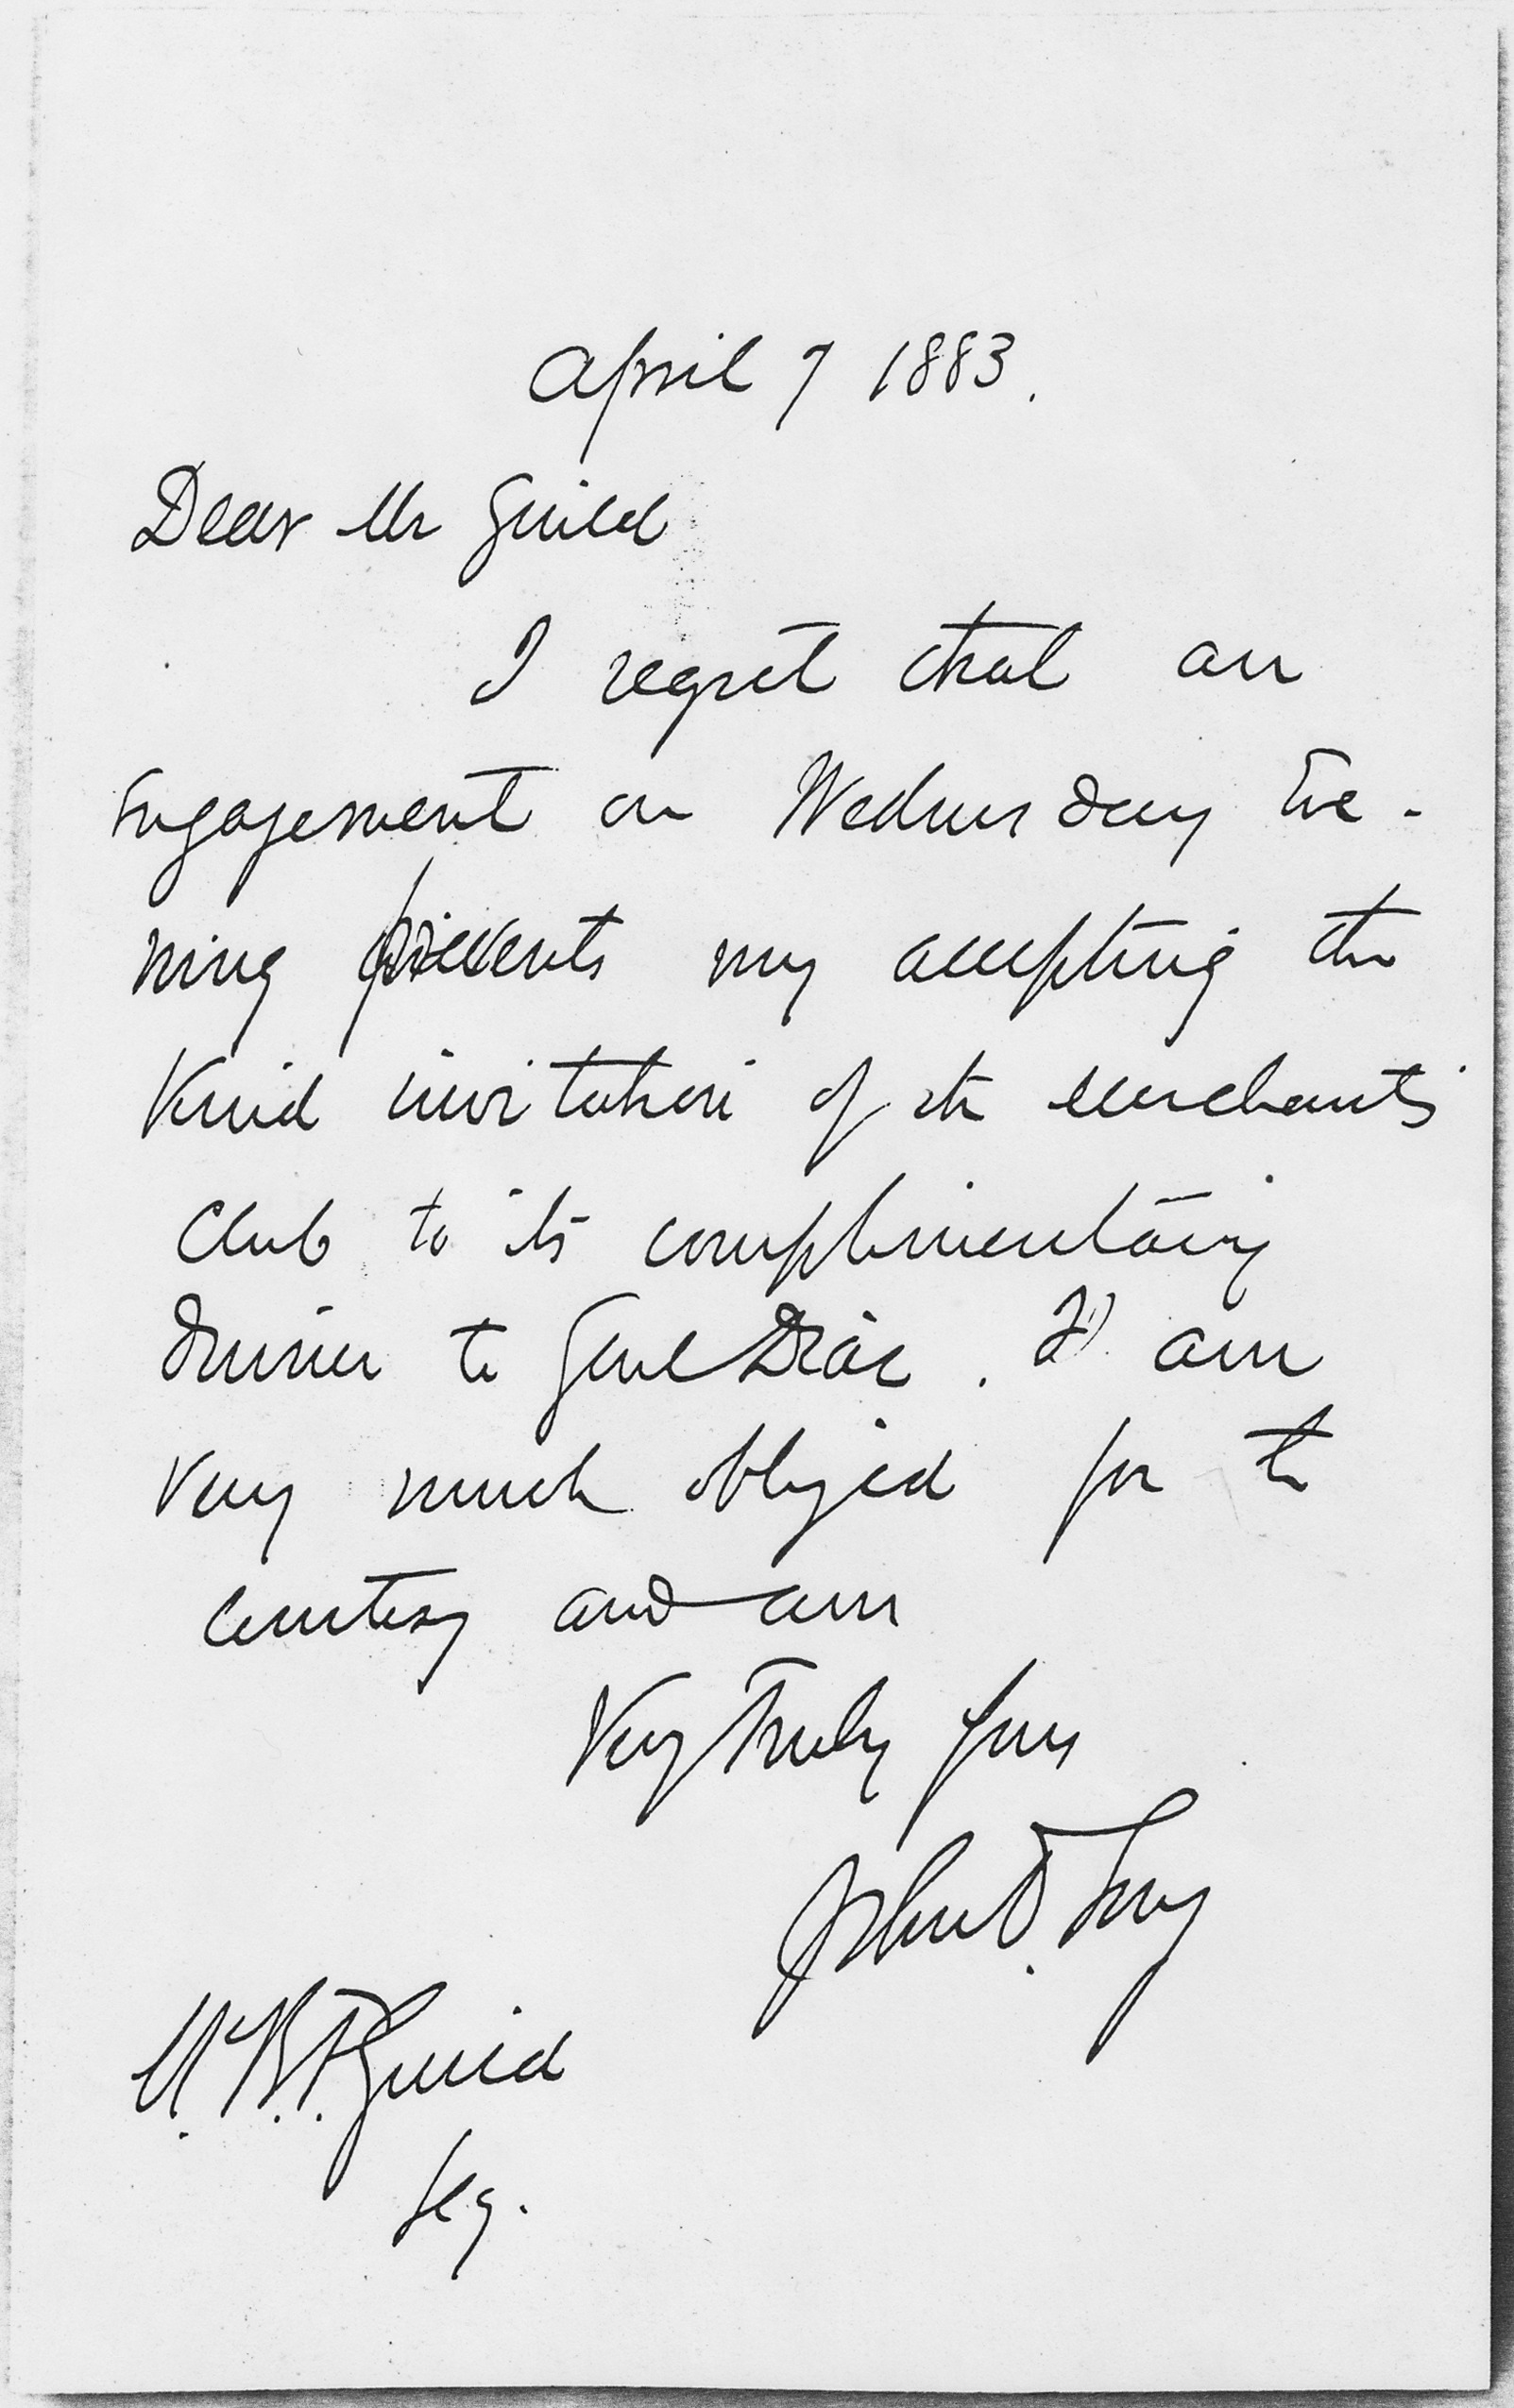 File:John D. Long Letter to B. F. Guild April 7, 1883   NARA